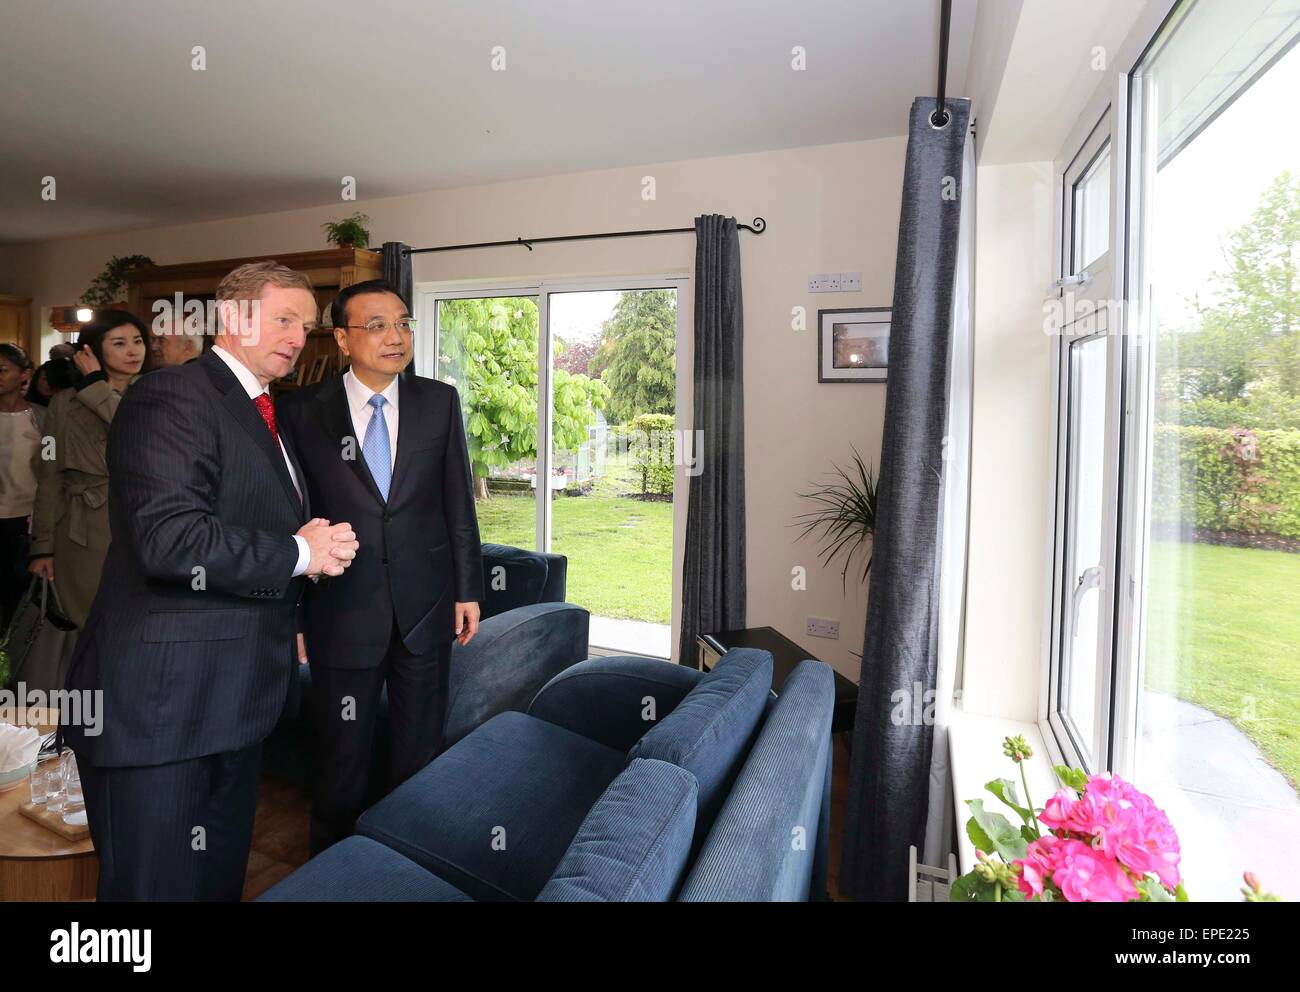 Shannon, Ireland. 17th May, 2015. Chinese Premier Li Keqiang (1st R) and his wife, Prof. Cheng Hong, in the company - Stock Image